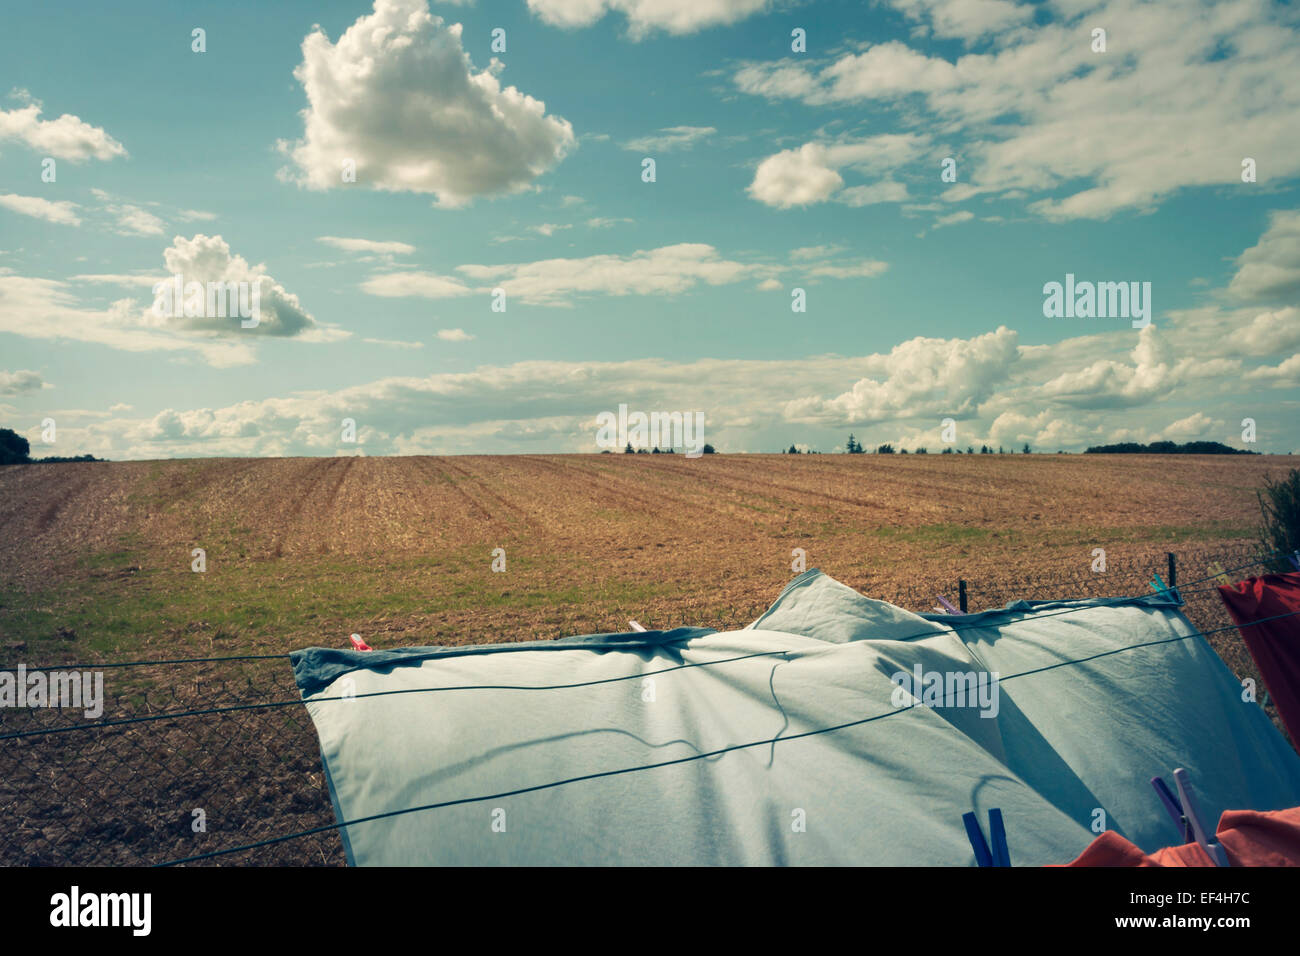 wind on laundry hanging - Stock Image